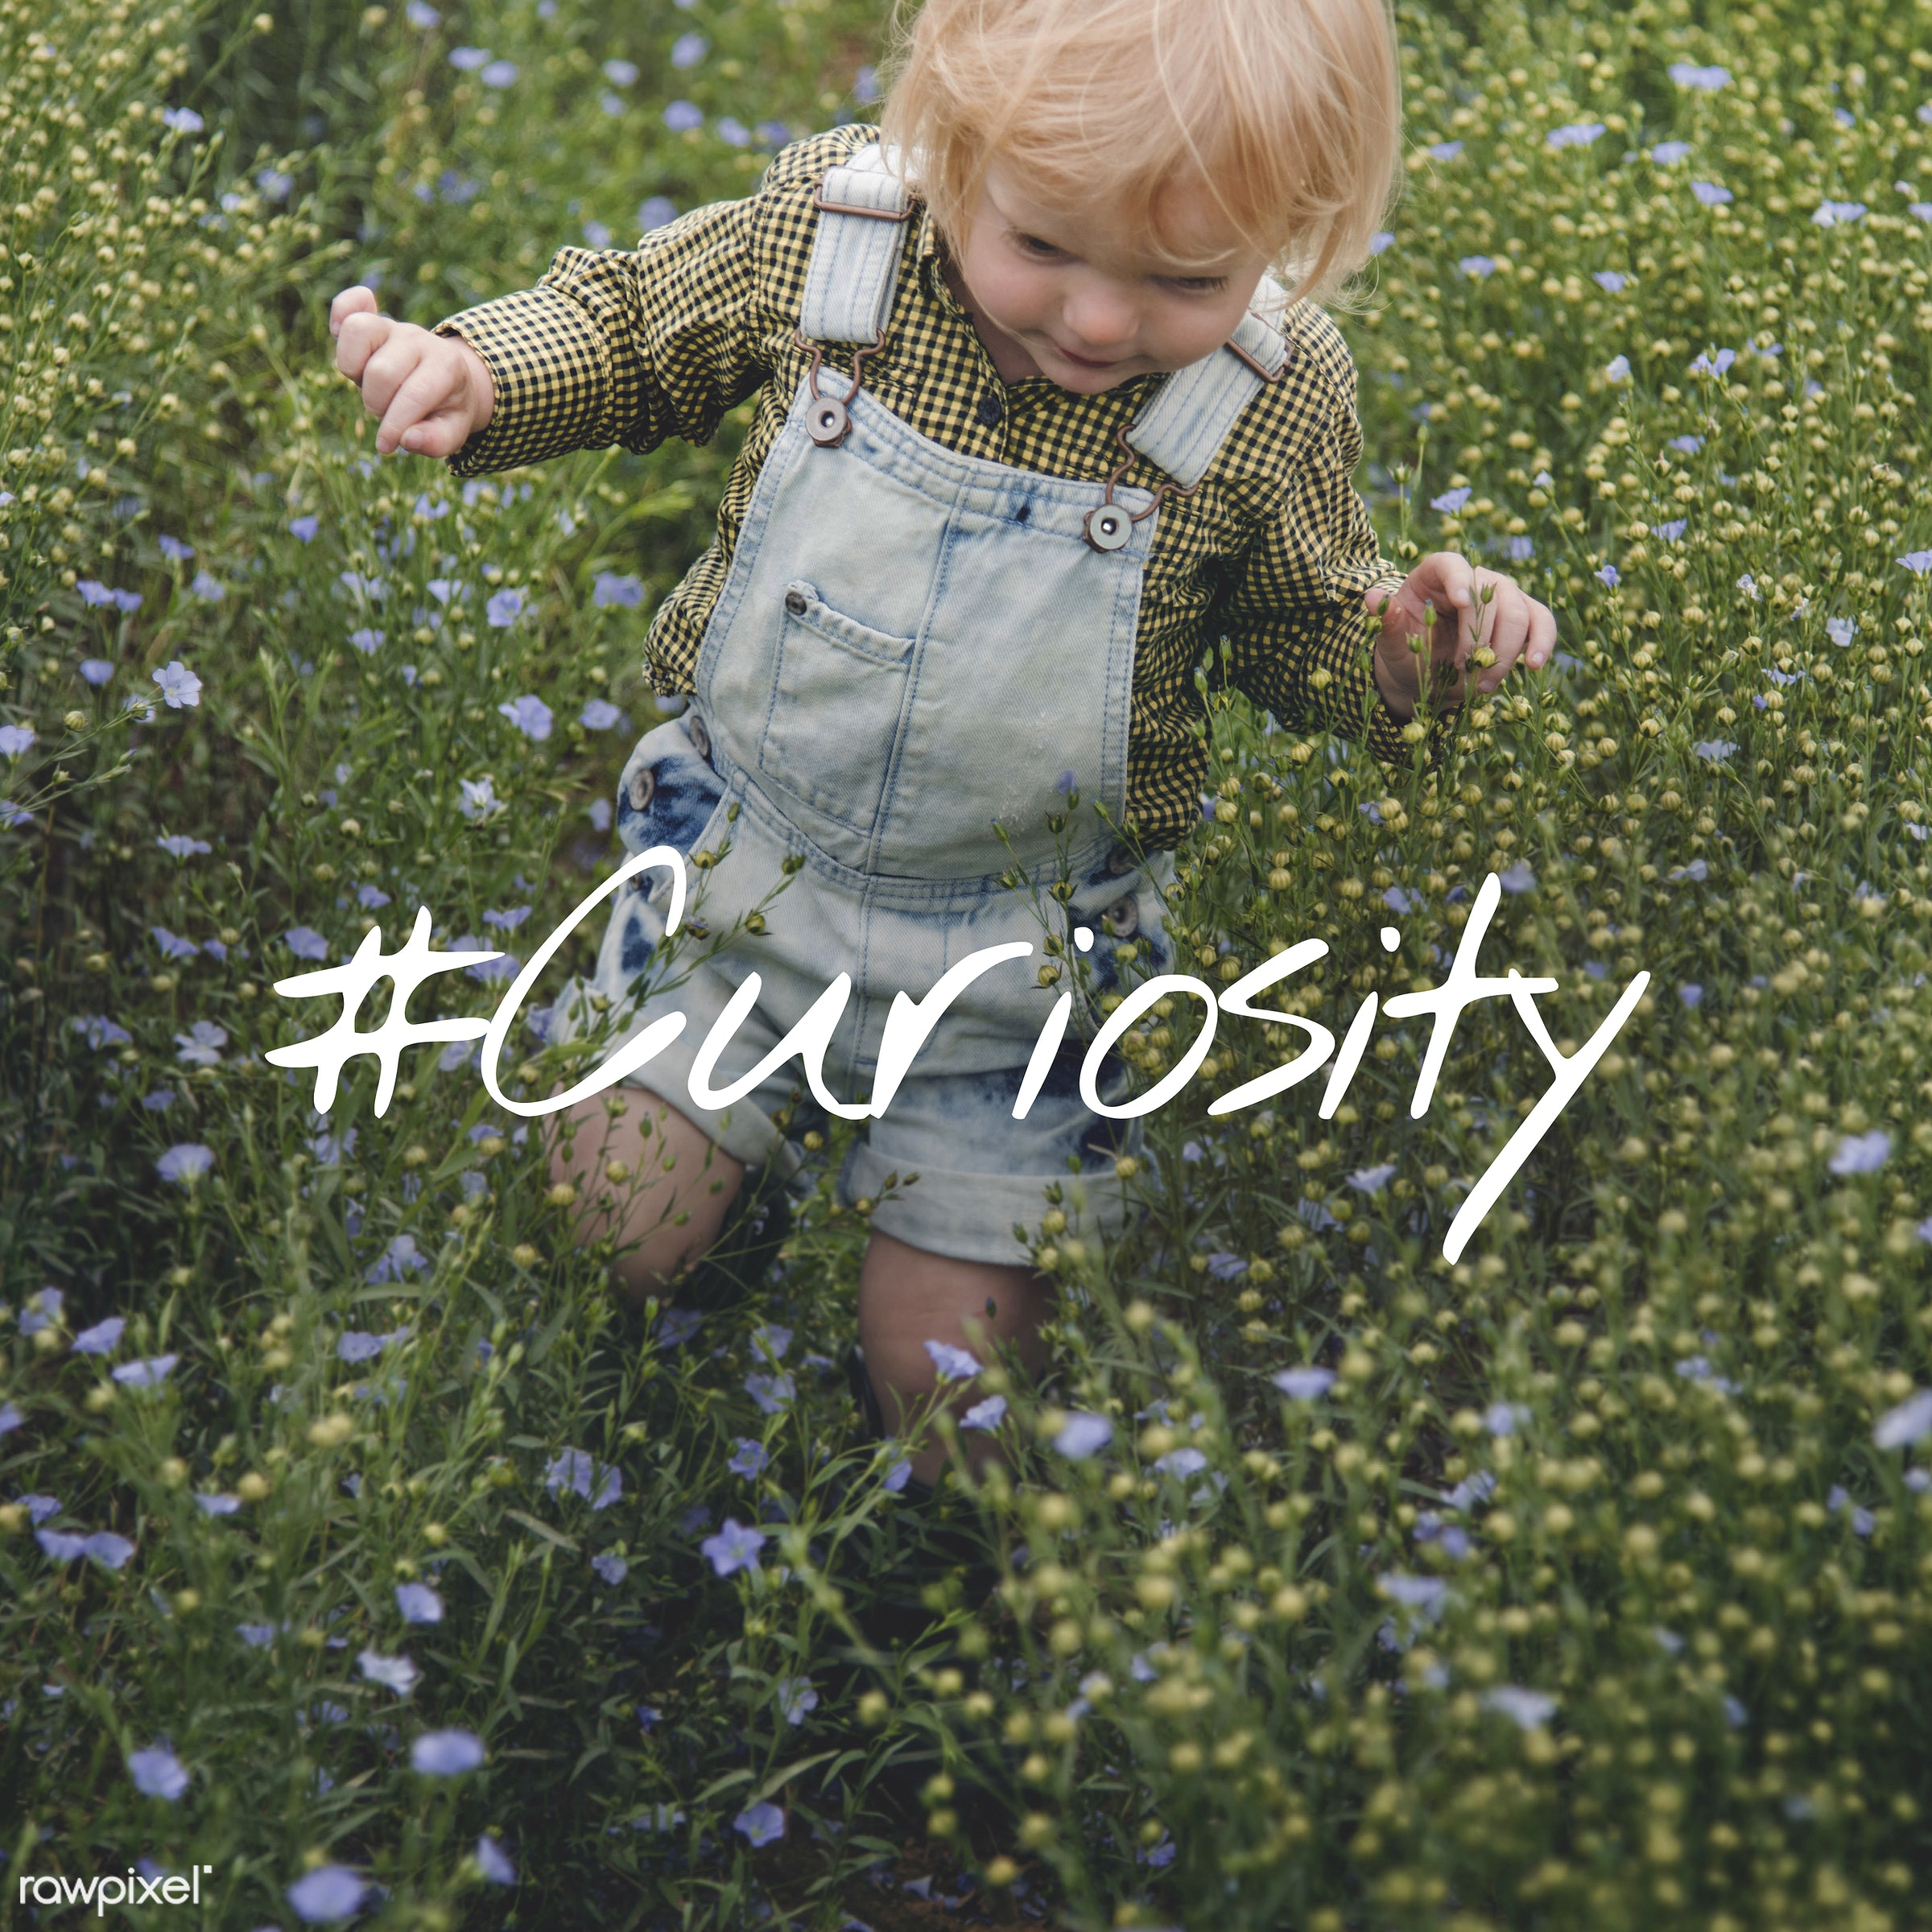 adorable, baby, blameless, blonde, boy, caucasian, child, childhood, children, curiosity, curious, cute, dungarees, flower...